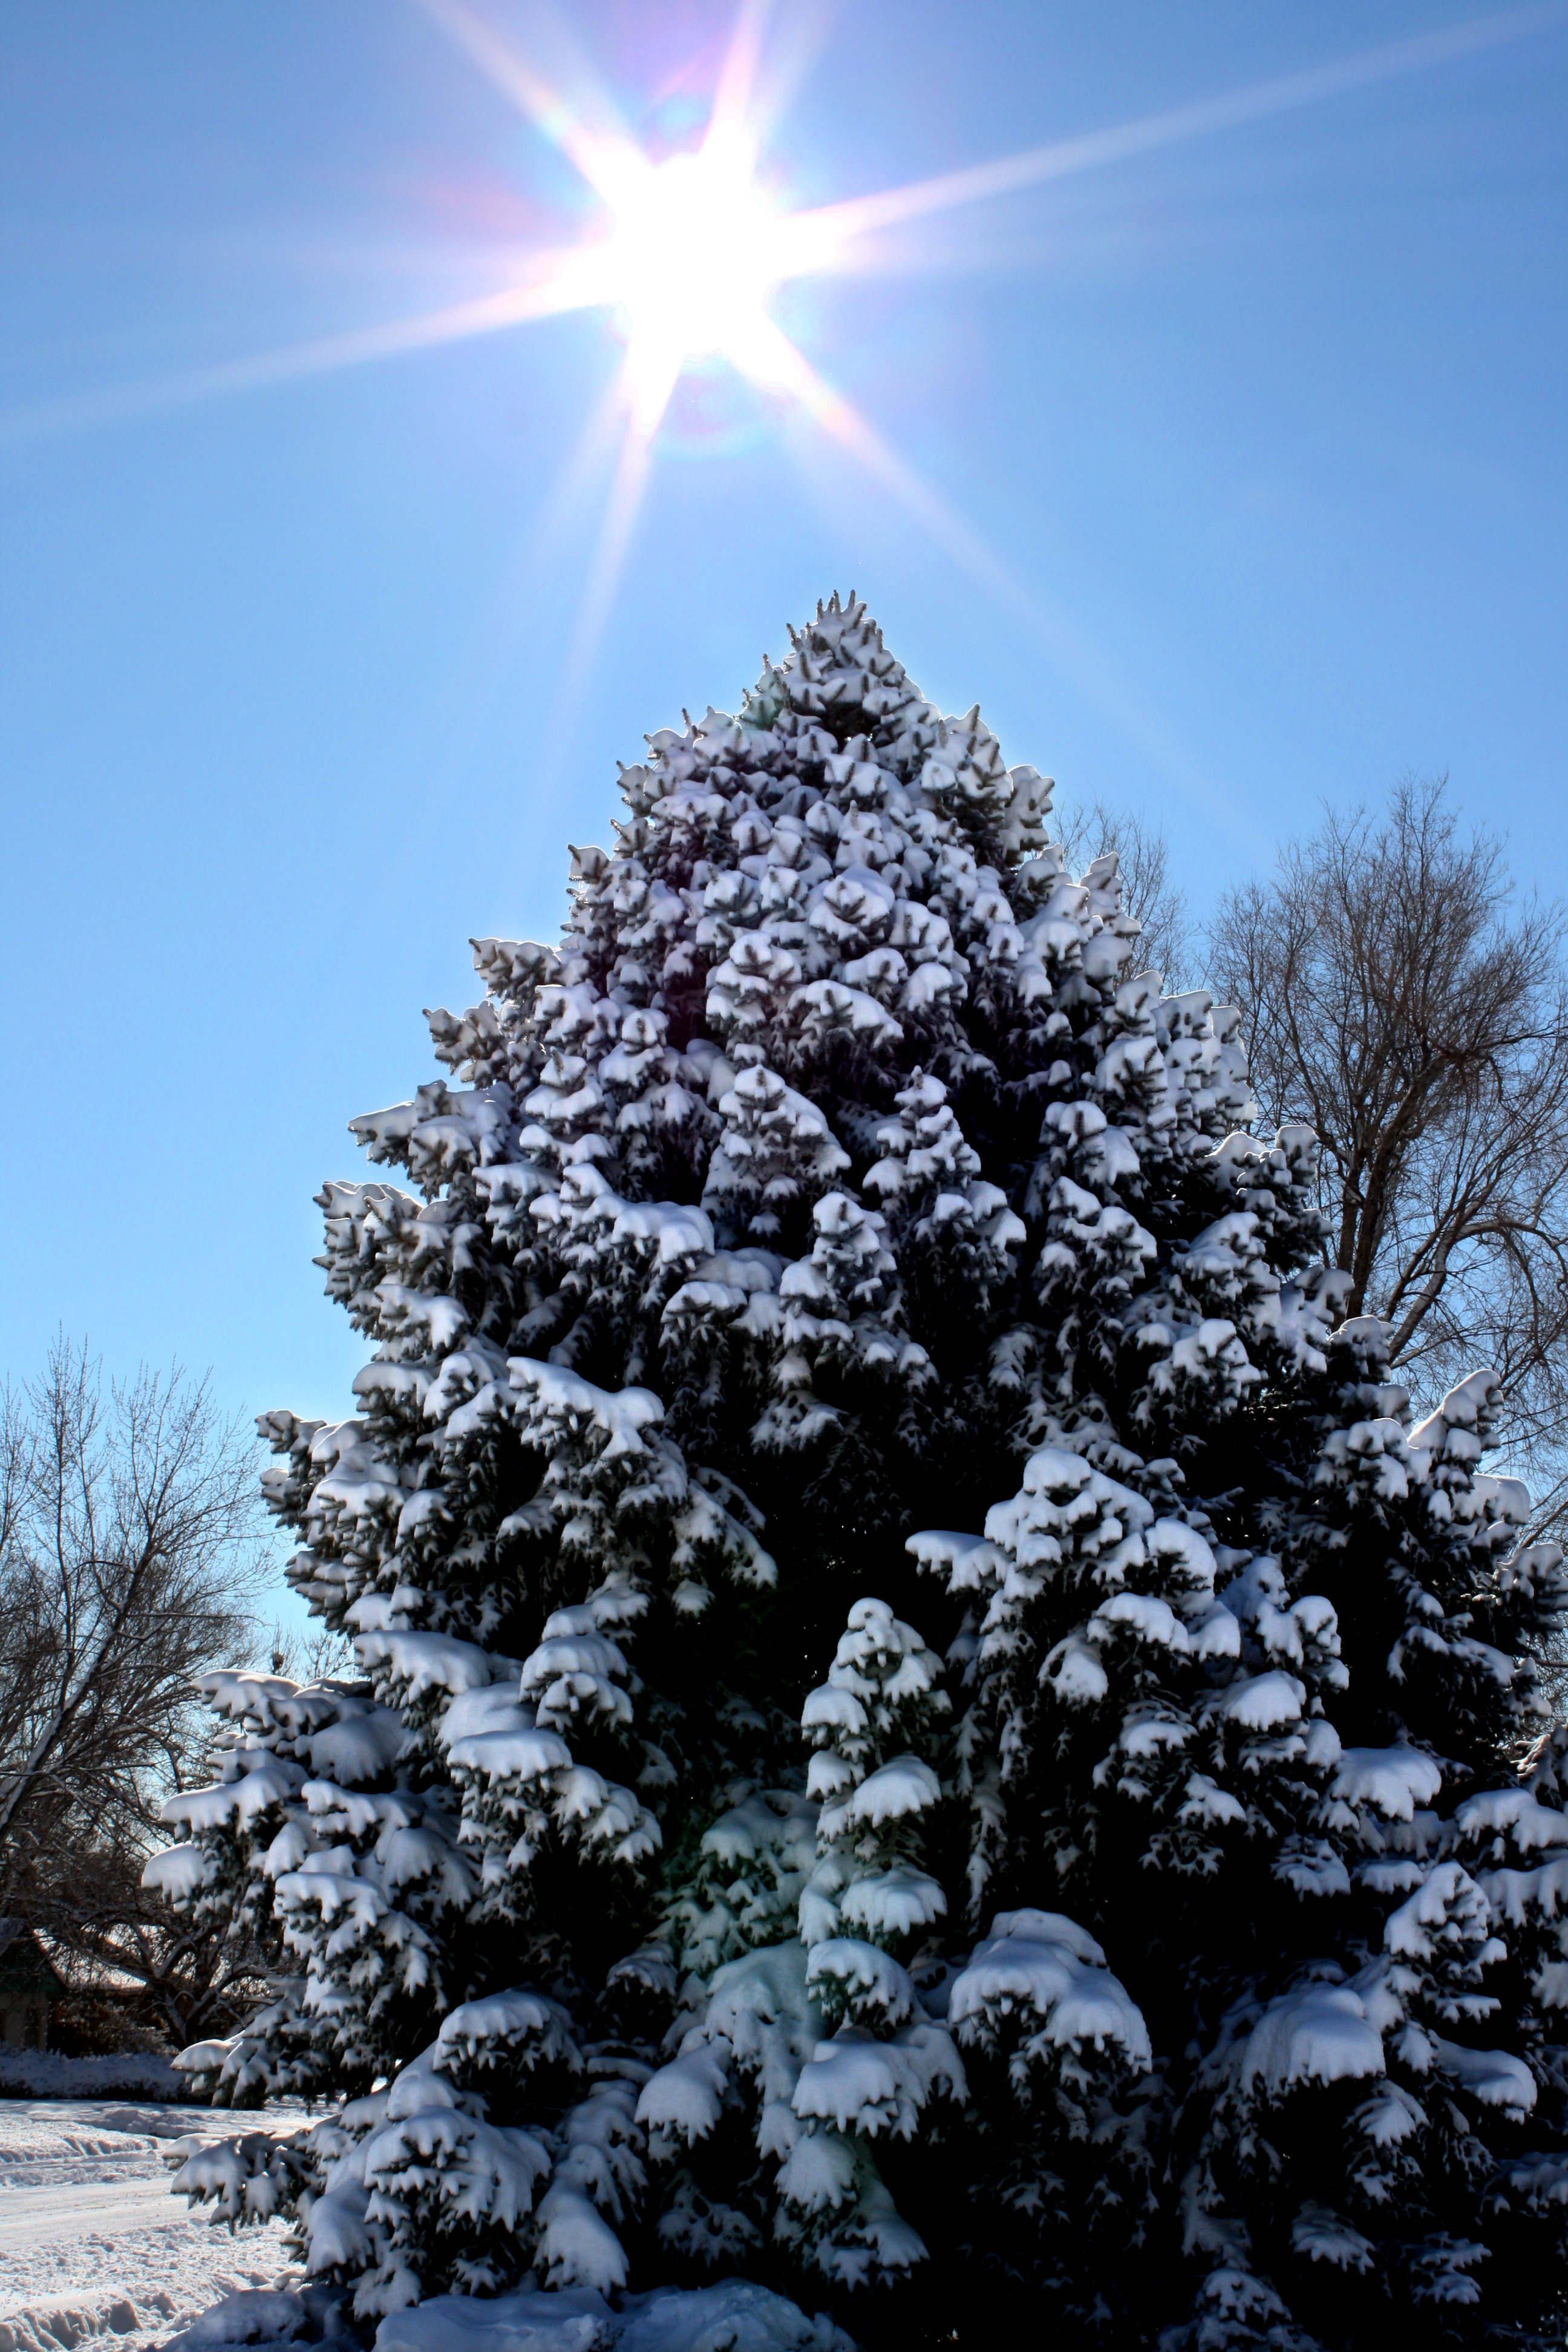 Snow covered pine tree with winter sun free high resolution photo